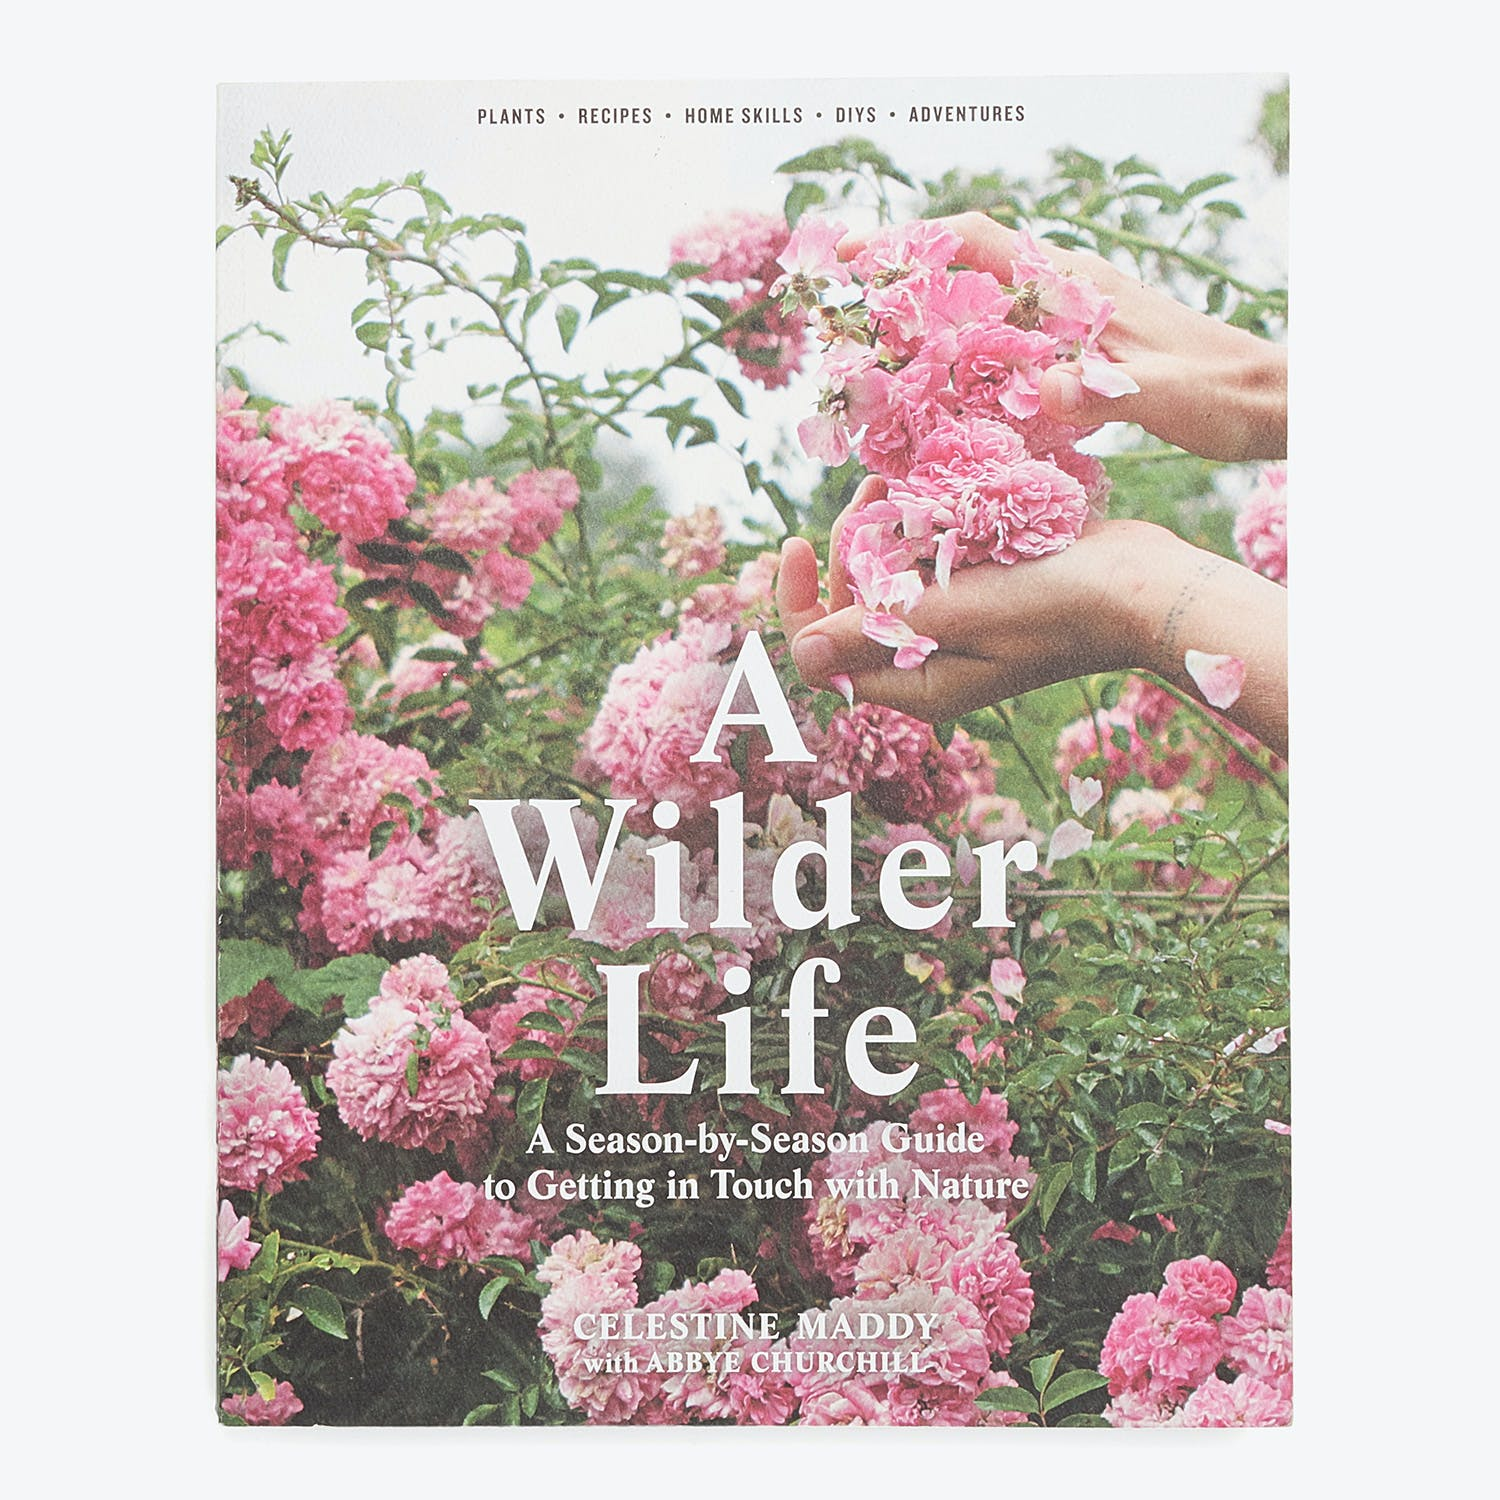 Product Image - A Wilder Life: A Season-by-Season Guide to Getting in Touch with Nature by Celestine Maddy & Abbye Churchill